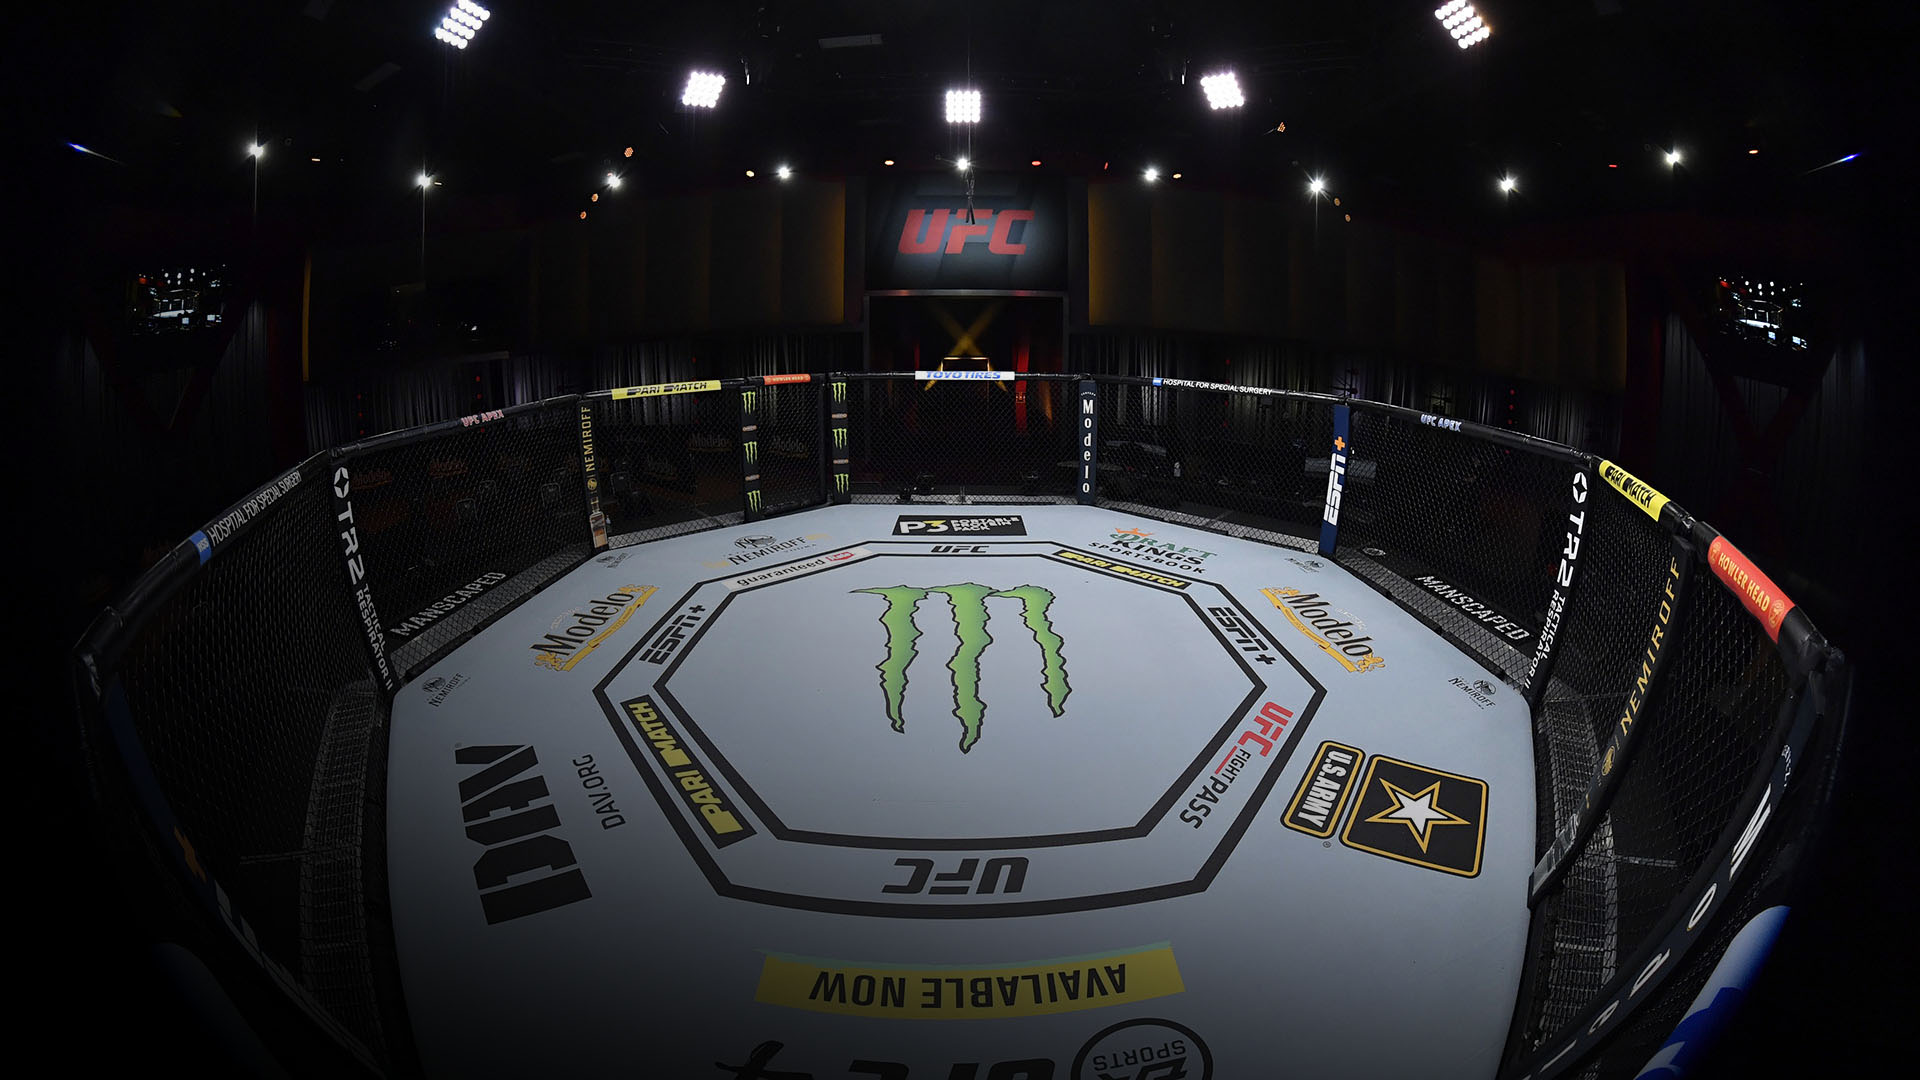 A general view of the Octagon prior to the UFC 255 event at UFC APEX on November 21, 2020 in Las Vegas, Nevada. (Photo by Jeff Bottari/Zuffa LLC)